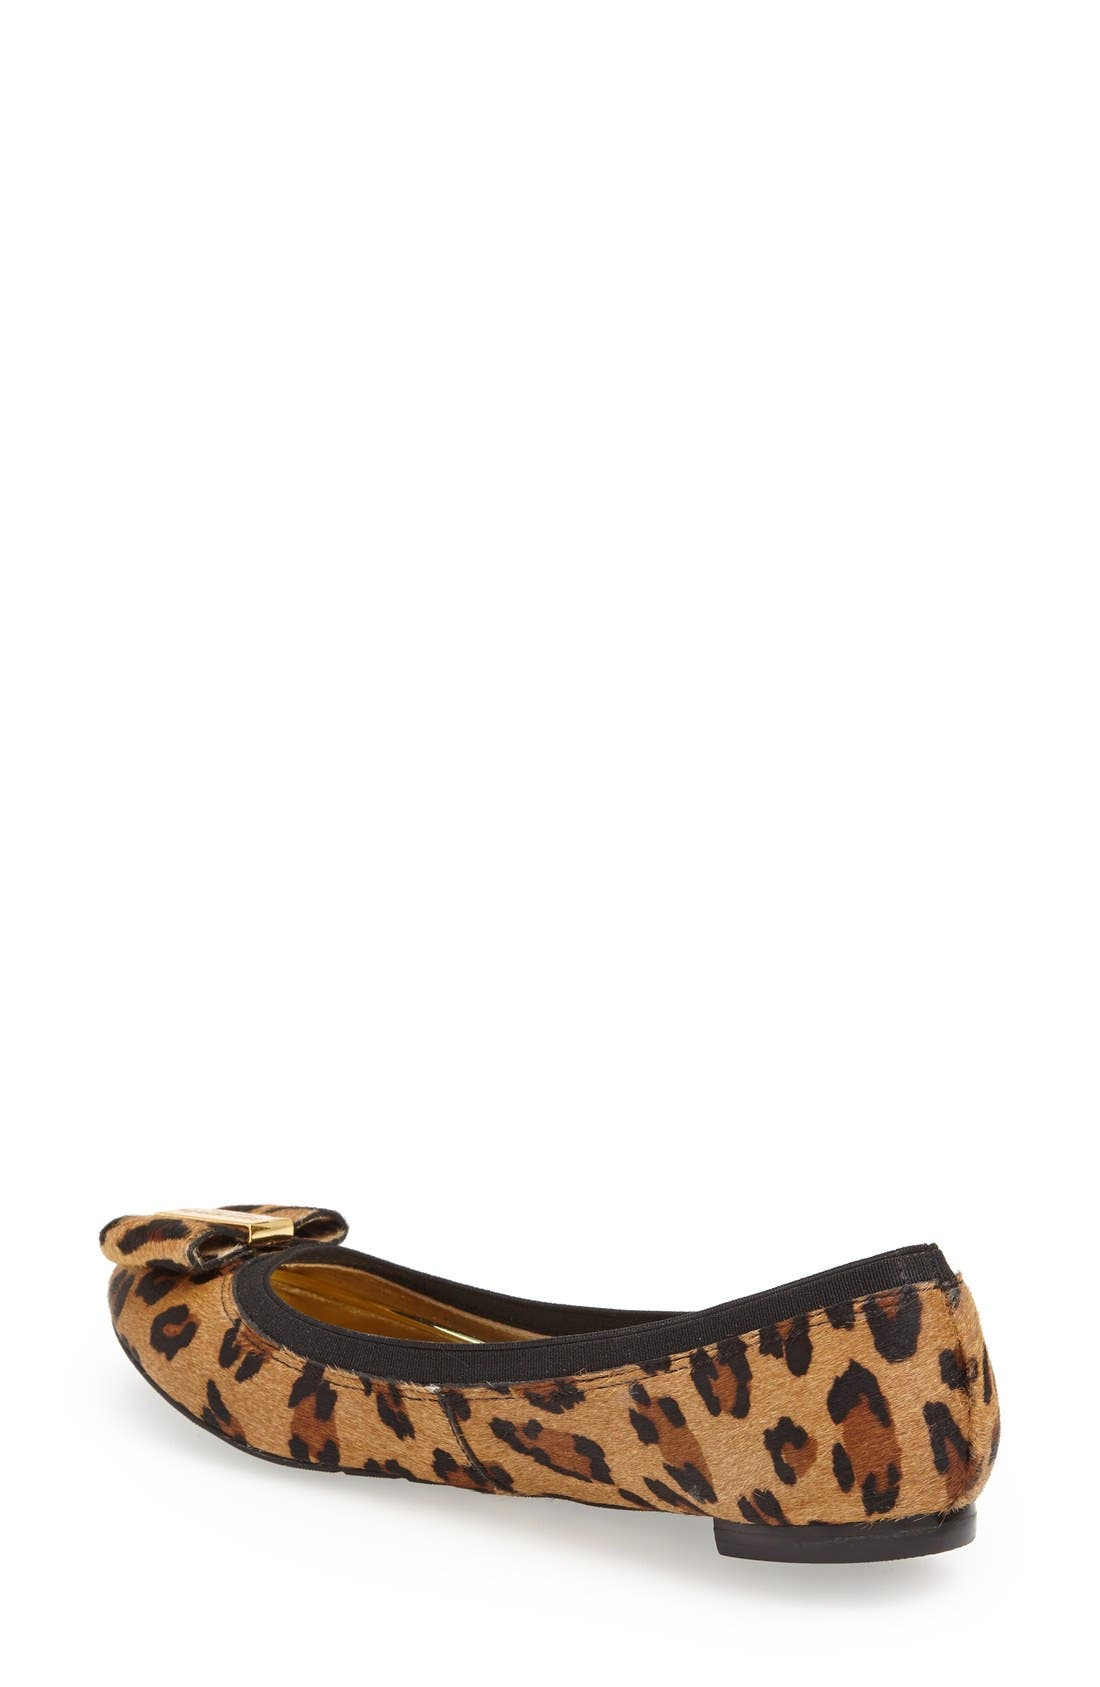 Alternate Image 2  - kate spade new york 'tock' calf hair flat (Women)